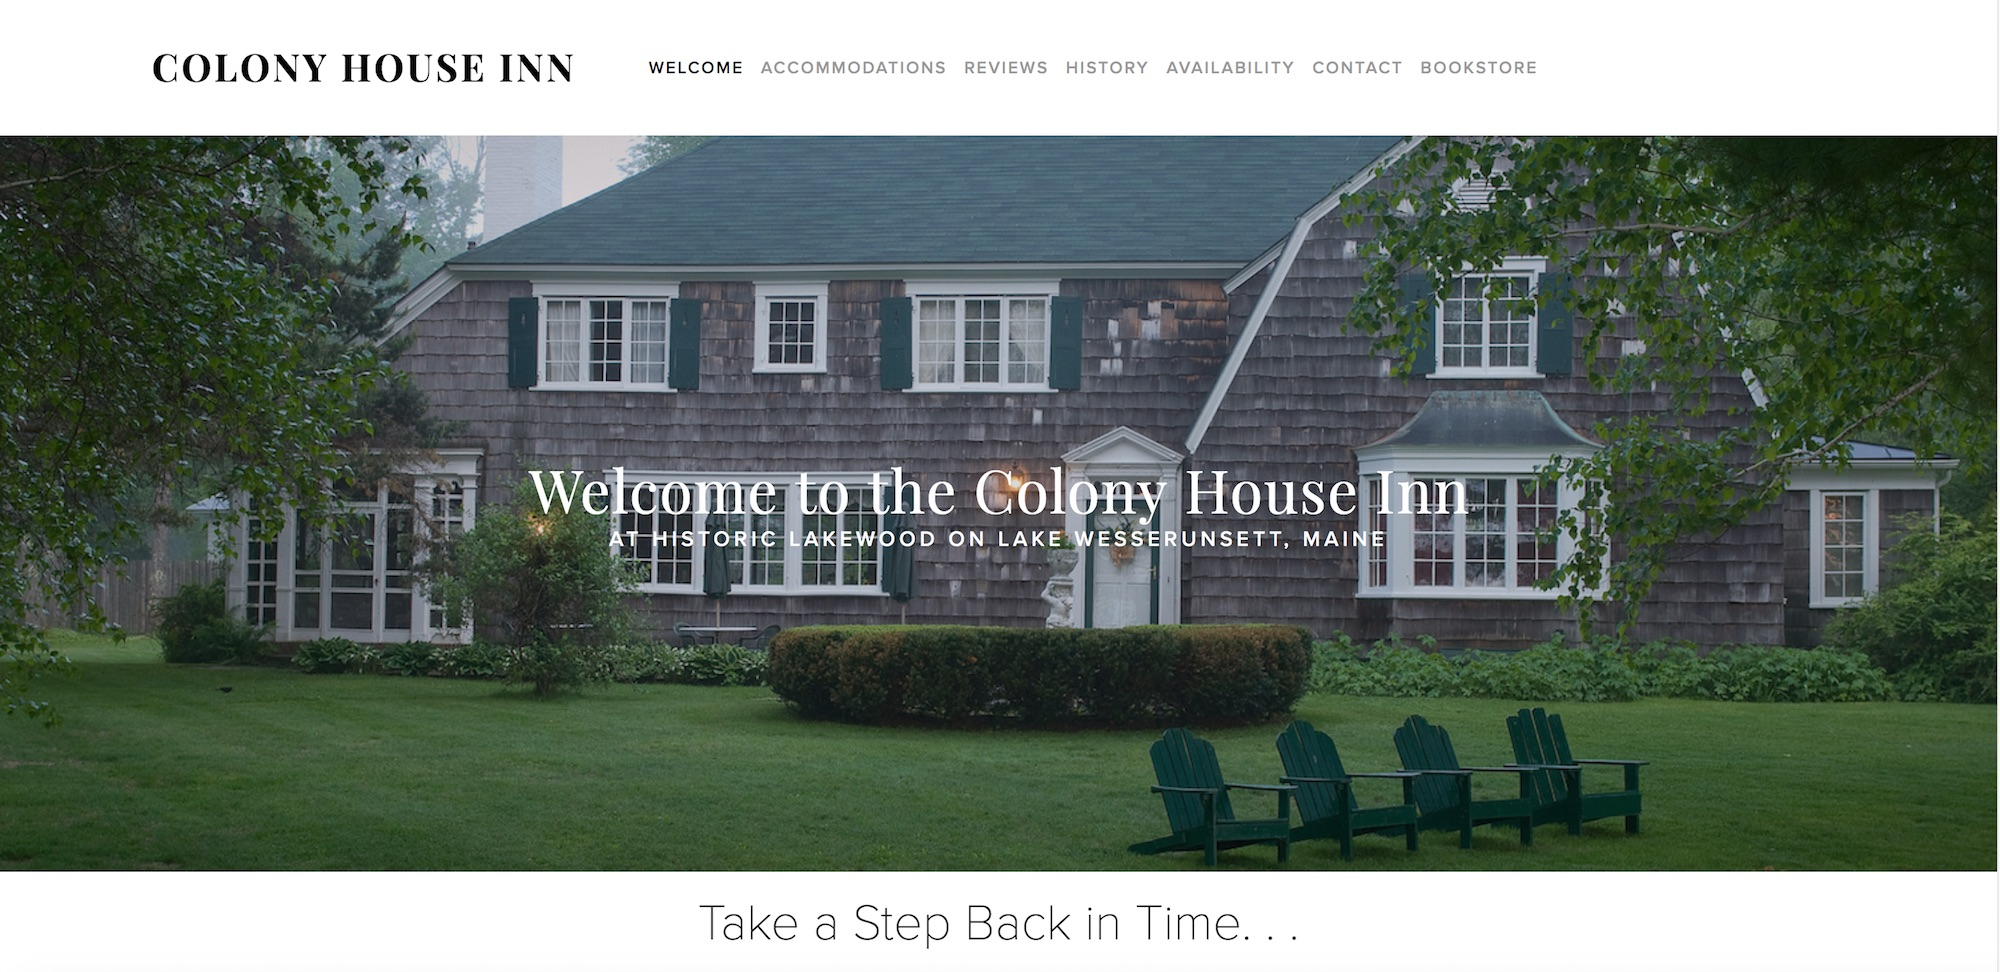 Colony House Inn Bed & Breakfast , Skowhegan, Maine  (Visit Site)